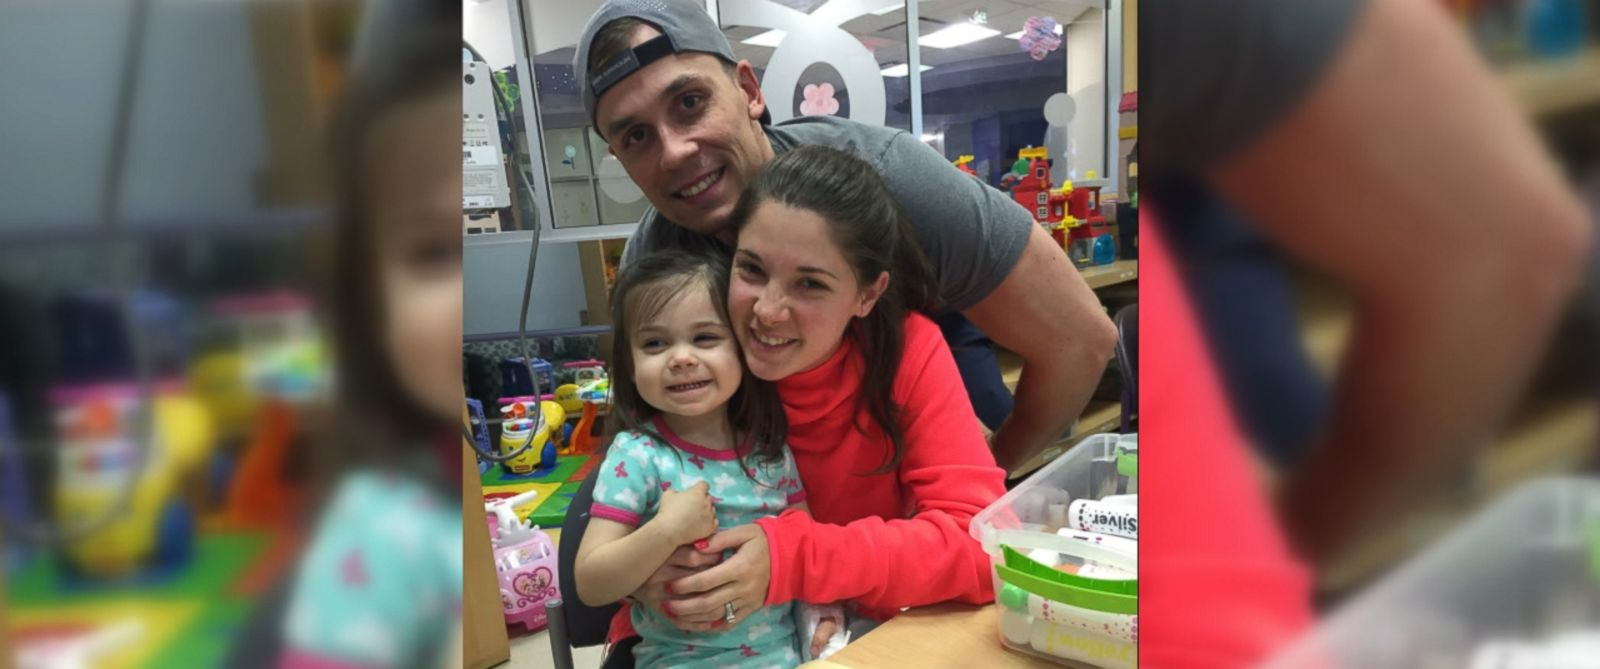 VIDEO: Shelby Skiles' 2-year-old daughter Sophie is receiving cancer treatments at Children's Medical Center Dallas.